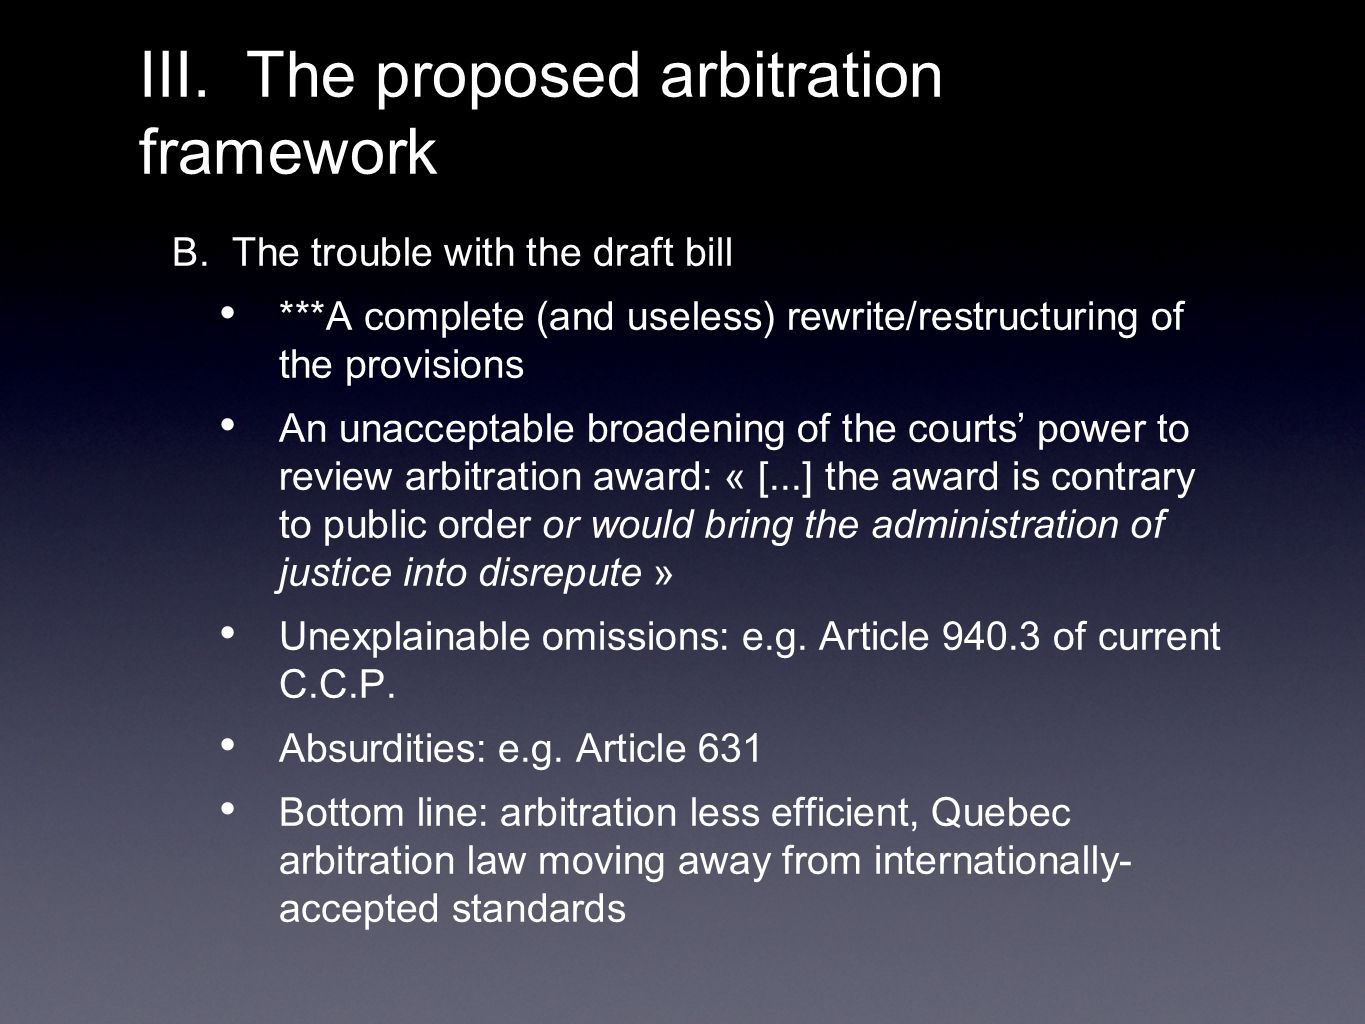 B. The trouble with the draft bill ***A complete (and useless) rewrite/restructuring of the provisions An unacceptable broadening of the courts' power